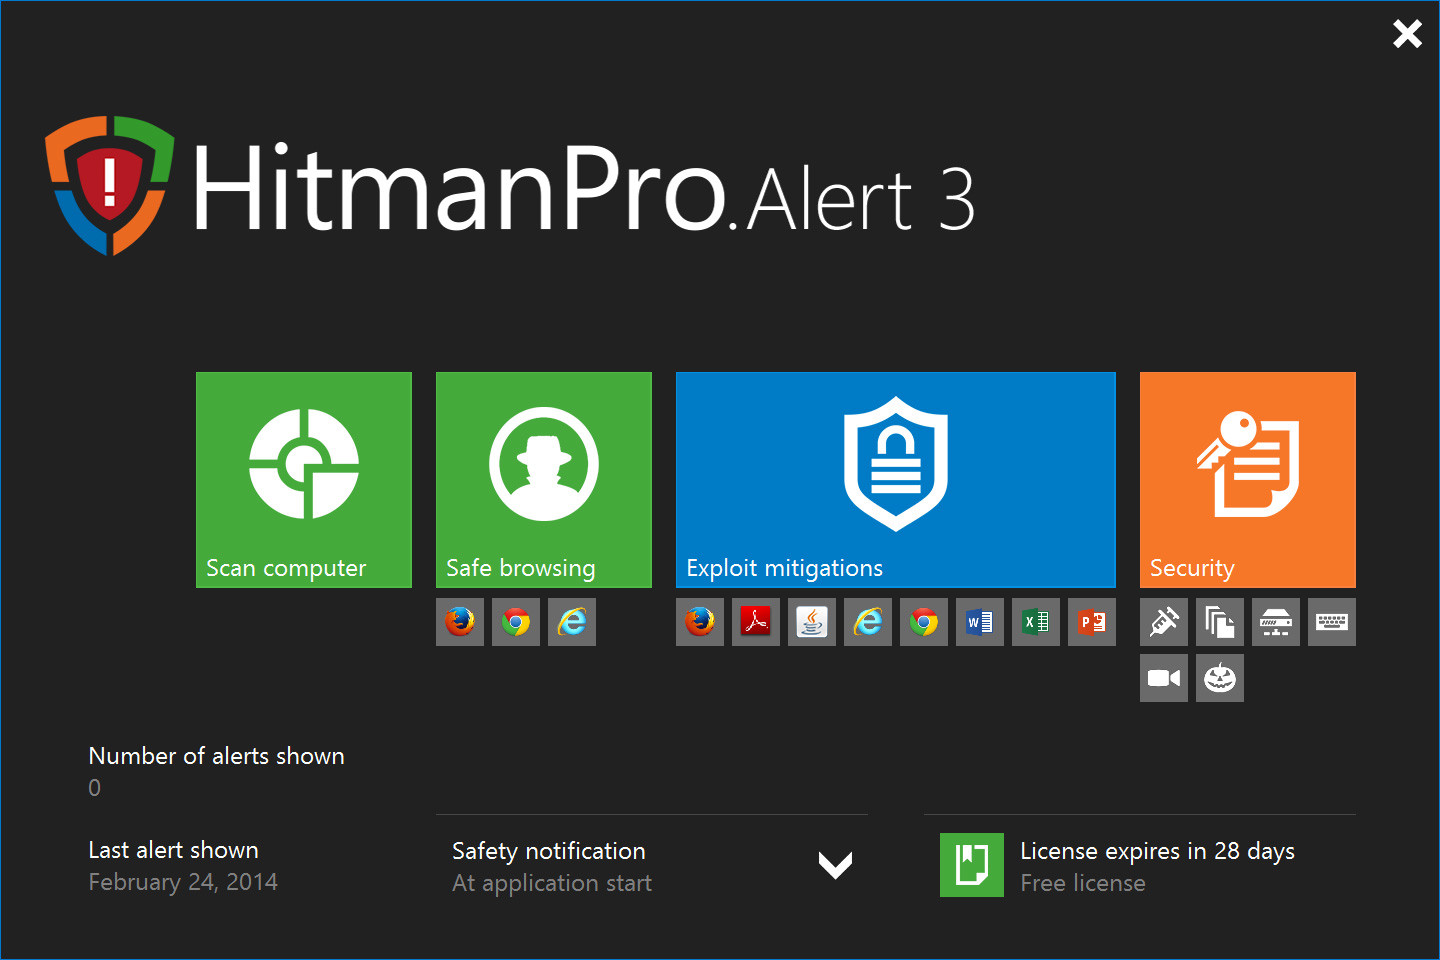 HitmanPro 3.7.11 Build 849 Crack Free Download Full Version 2020